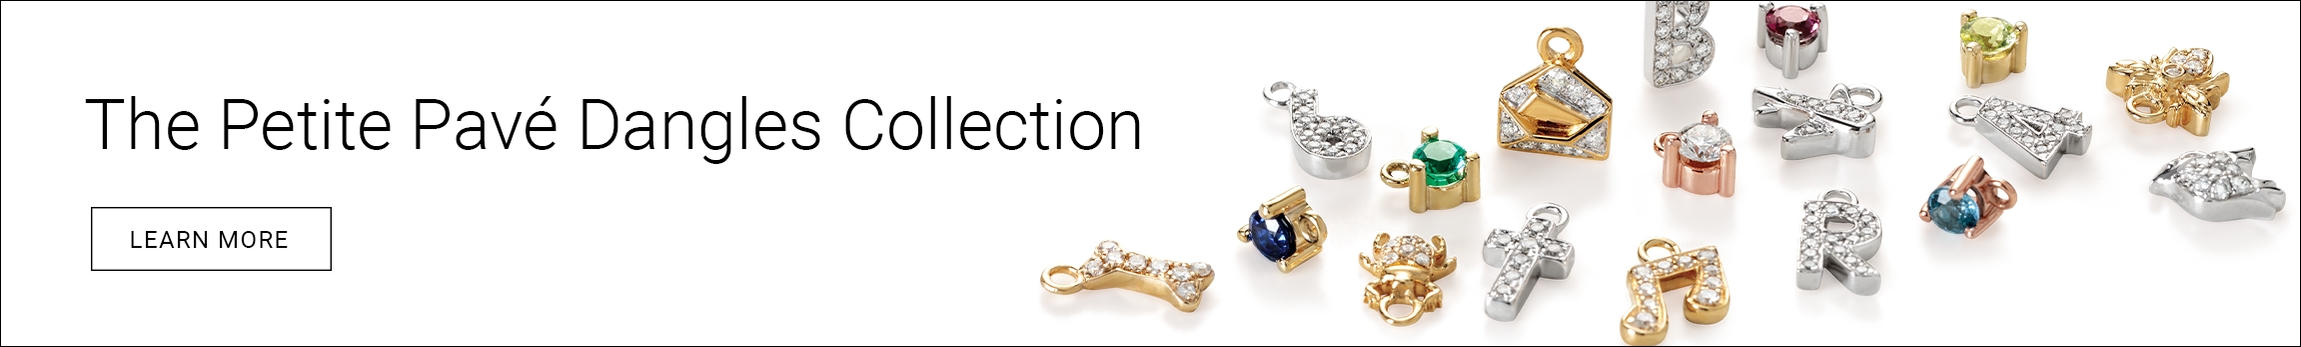 The Petite Pave Dangles Collection